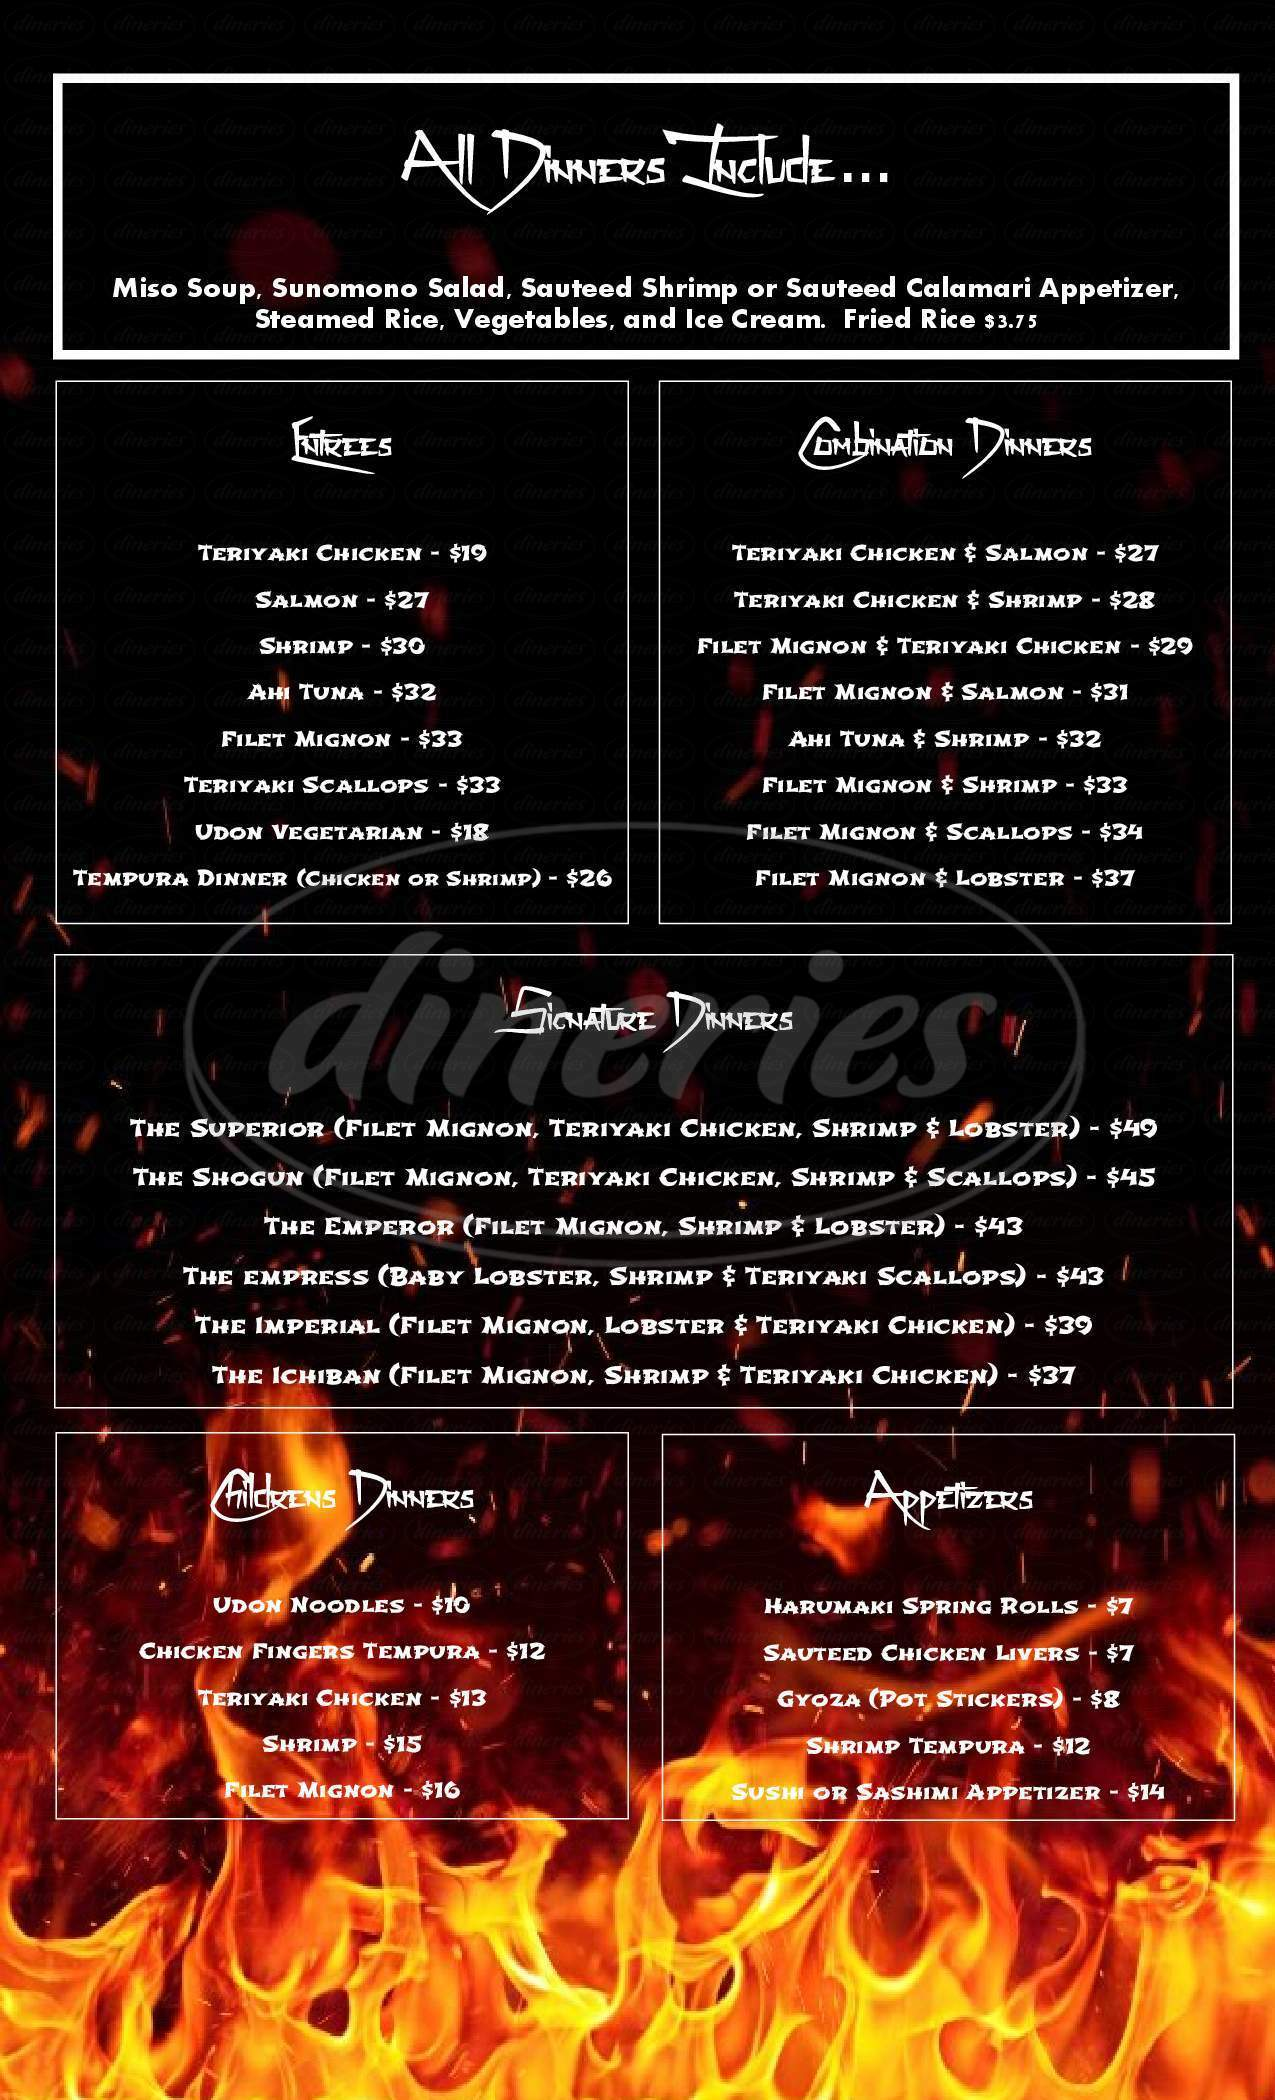 menu for Ichiban Japanese Steak House & Sushi Bar